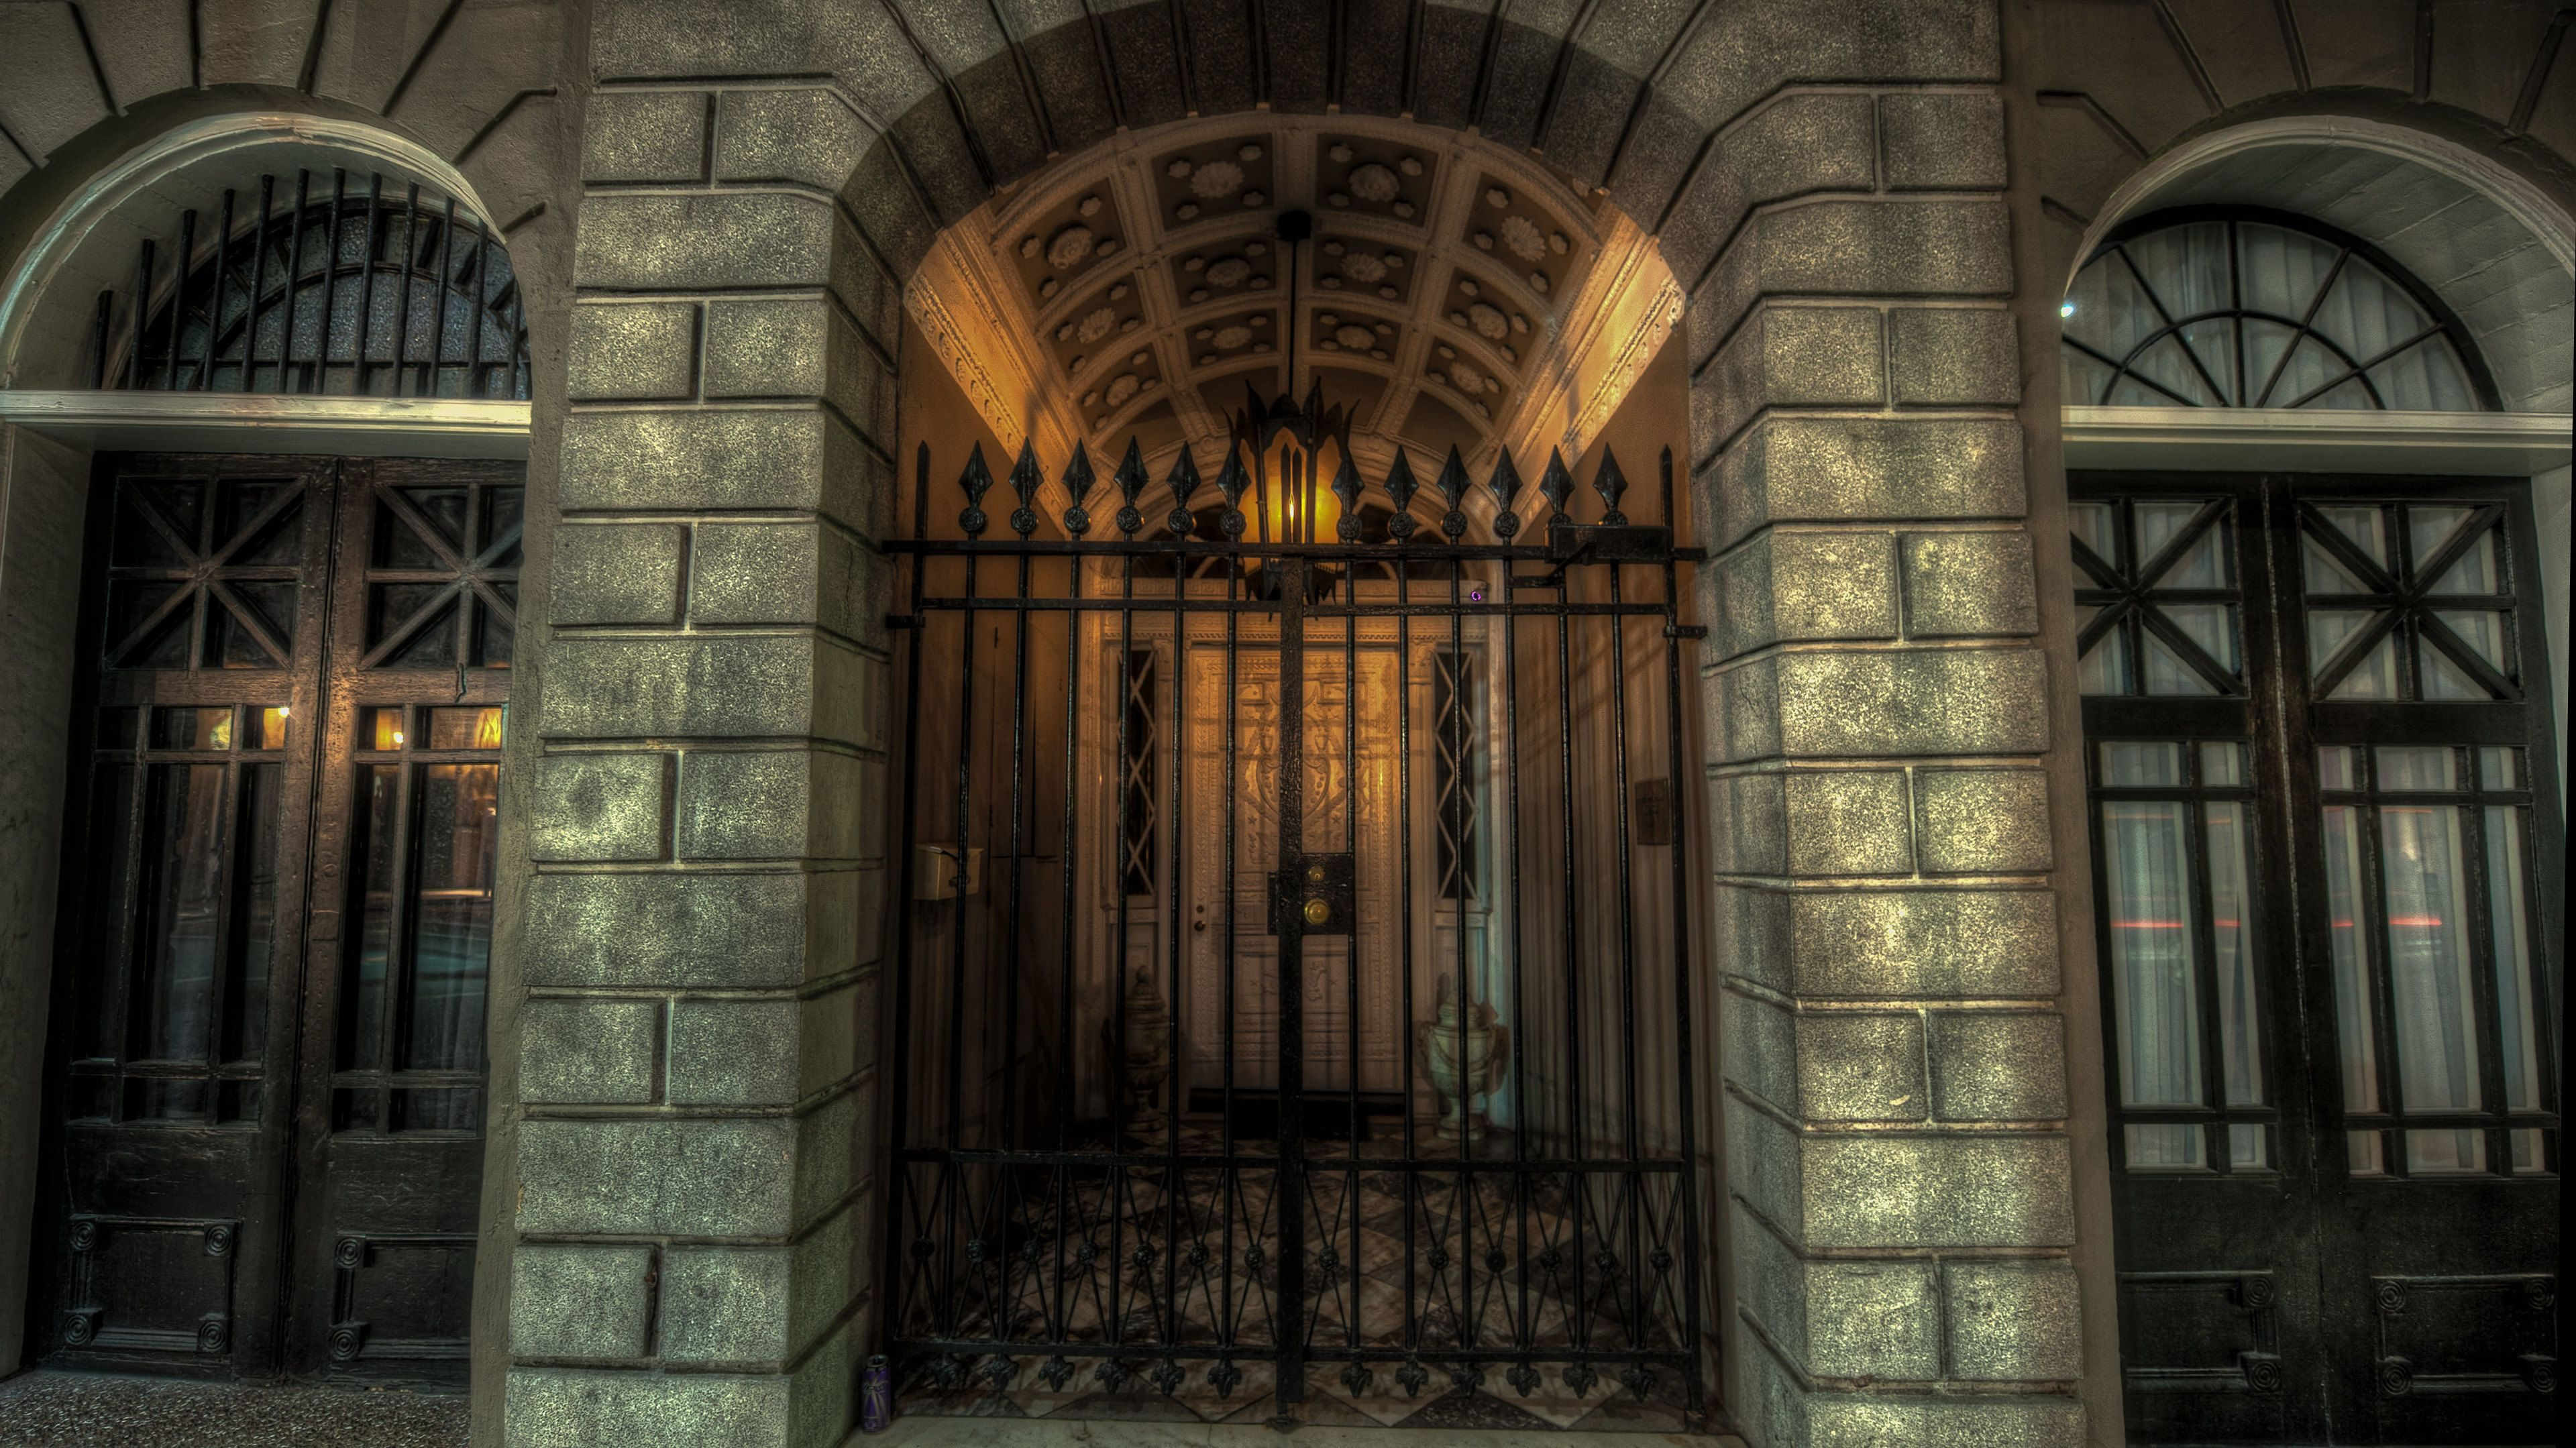 Raw iron gate at beginning of hallway at exterior of building in the French Quarter in New Orleans